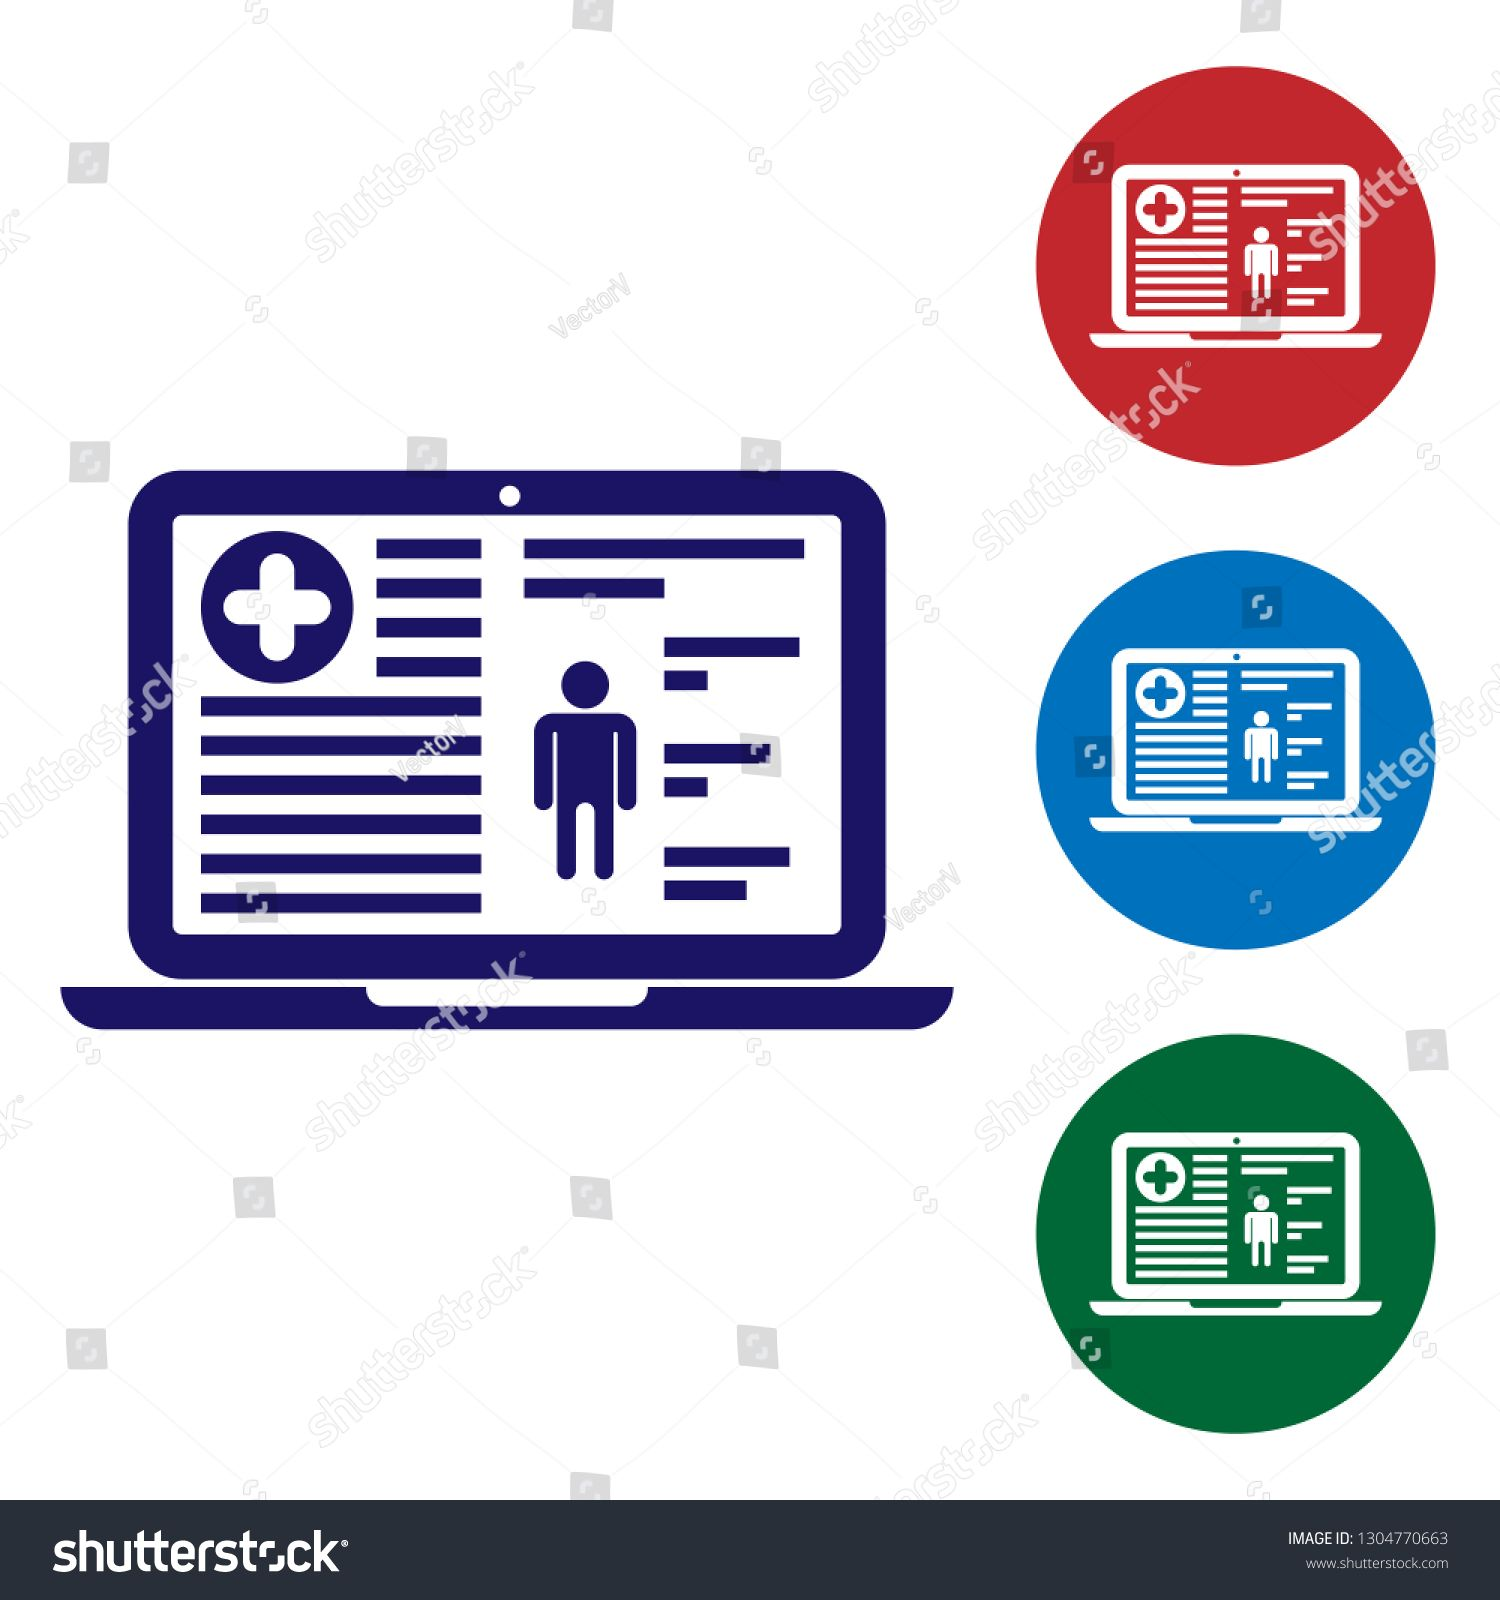 Blue Medical Clinical Record On Screen Of Laptop Icon Isolated On White Background Health Insurance Form Docum Clinic Health Insurance Health Insurance Plans